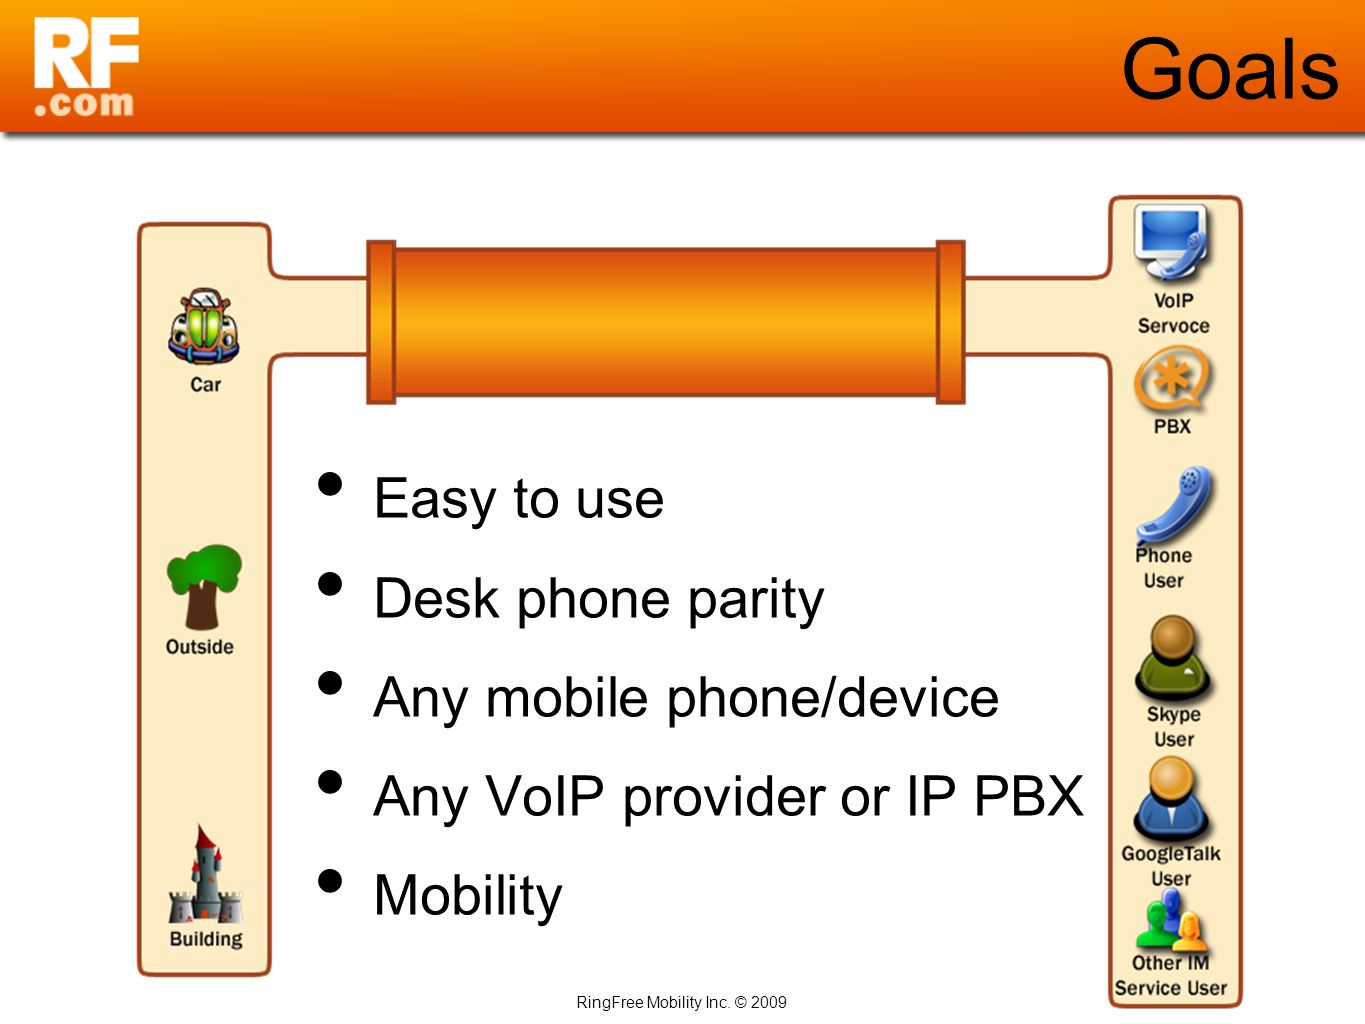 RingFree Mobility Inc. © 2009 Goals Easy to use Desk phone parity Any mobile phone/device Any VoIP provider or IP PBX Mobility